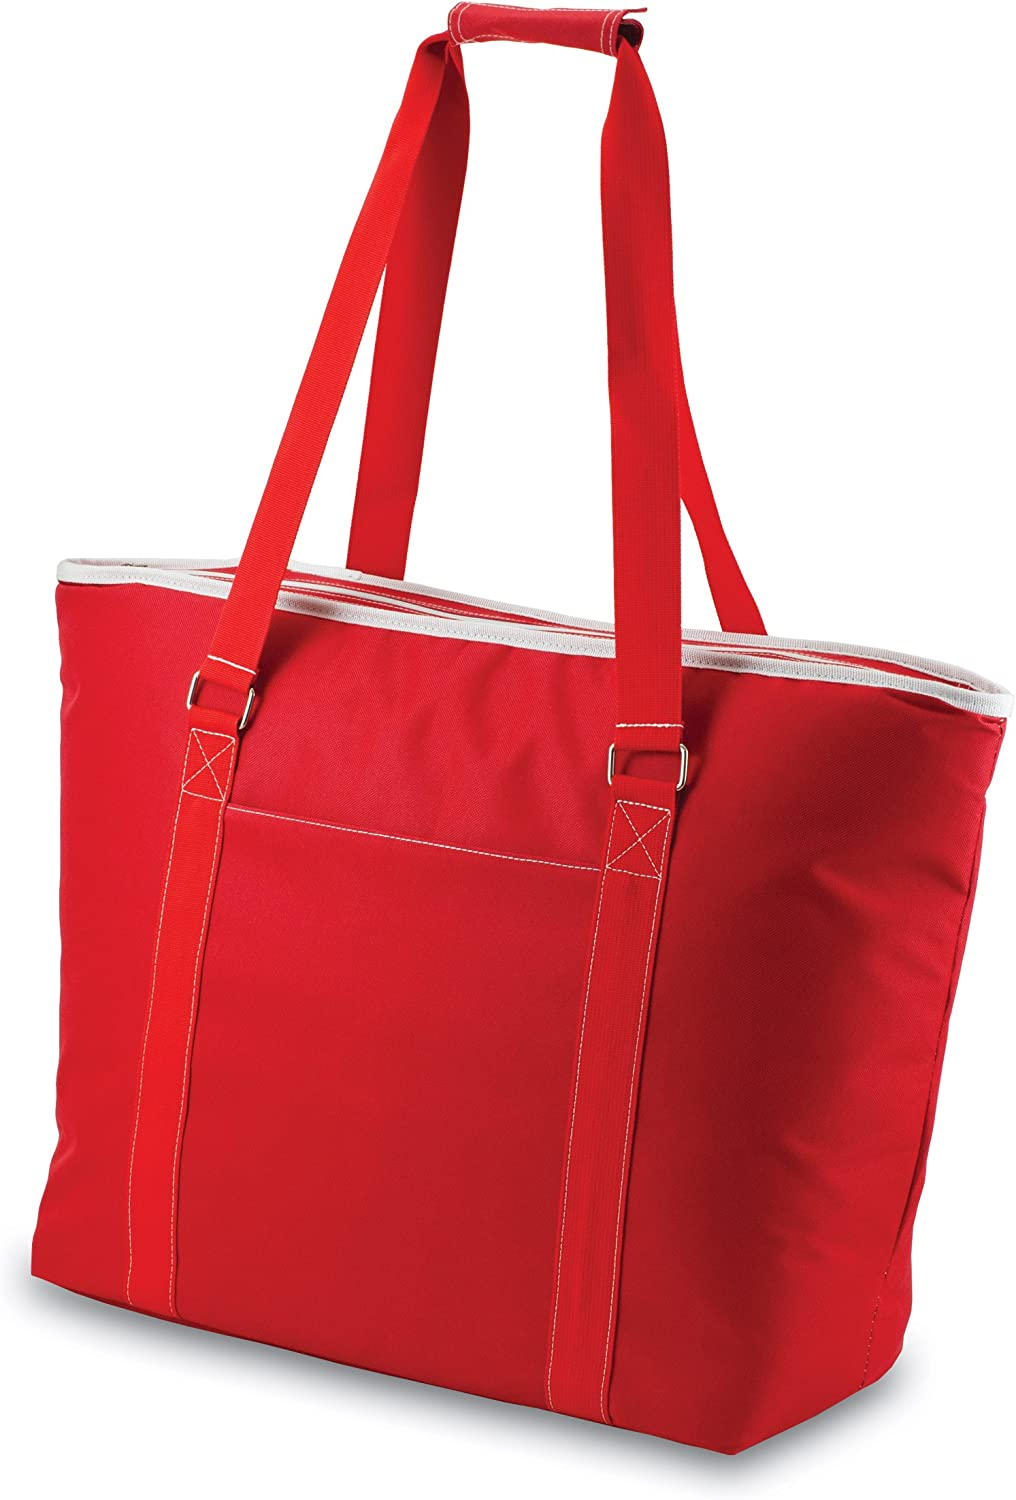 ONIVA – a Picnic Time Brand Tahoe Extra Large Insulated Cooler Tote, Red